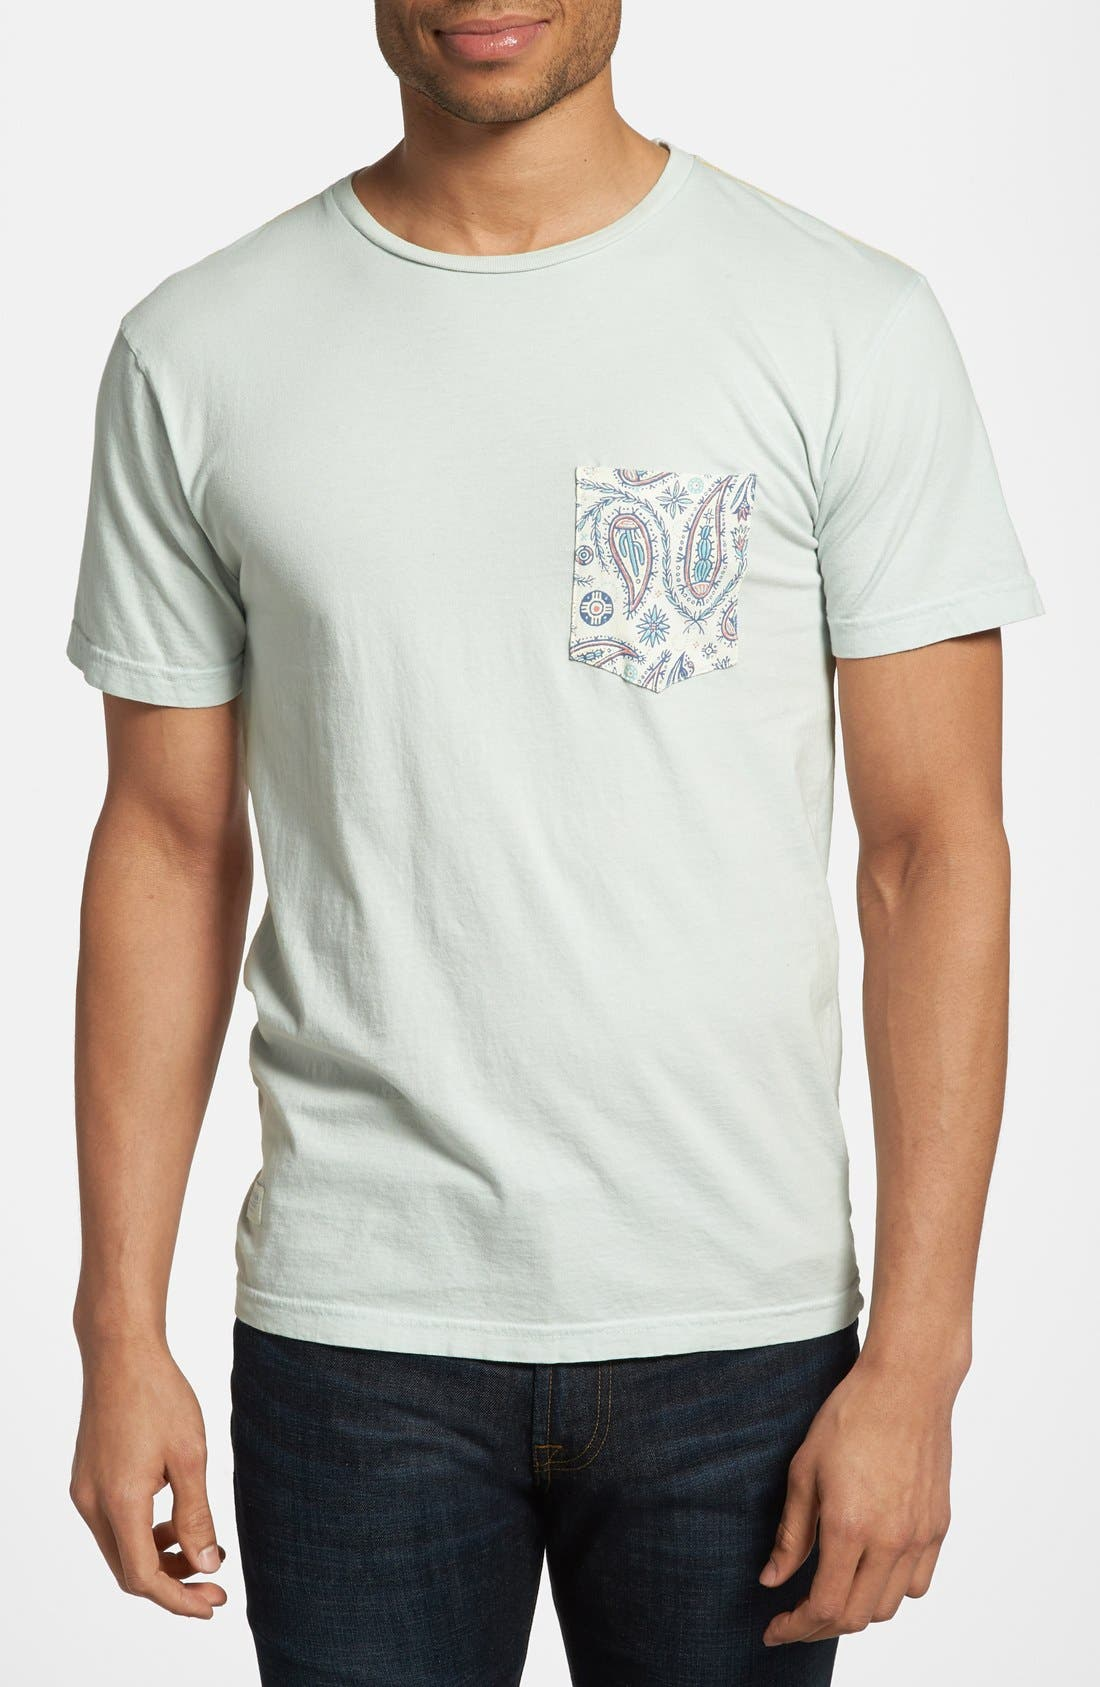 Alternate Image 1 Selected - Katin 'Kerchief' Cotton Crewneck Short Sleeve T-Shirt